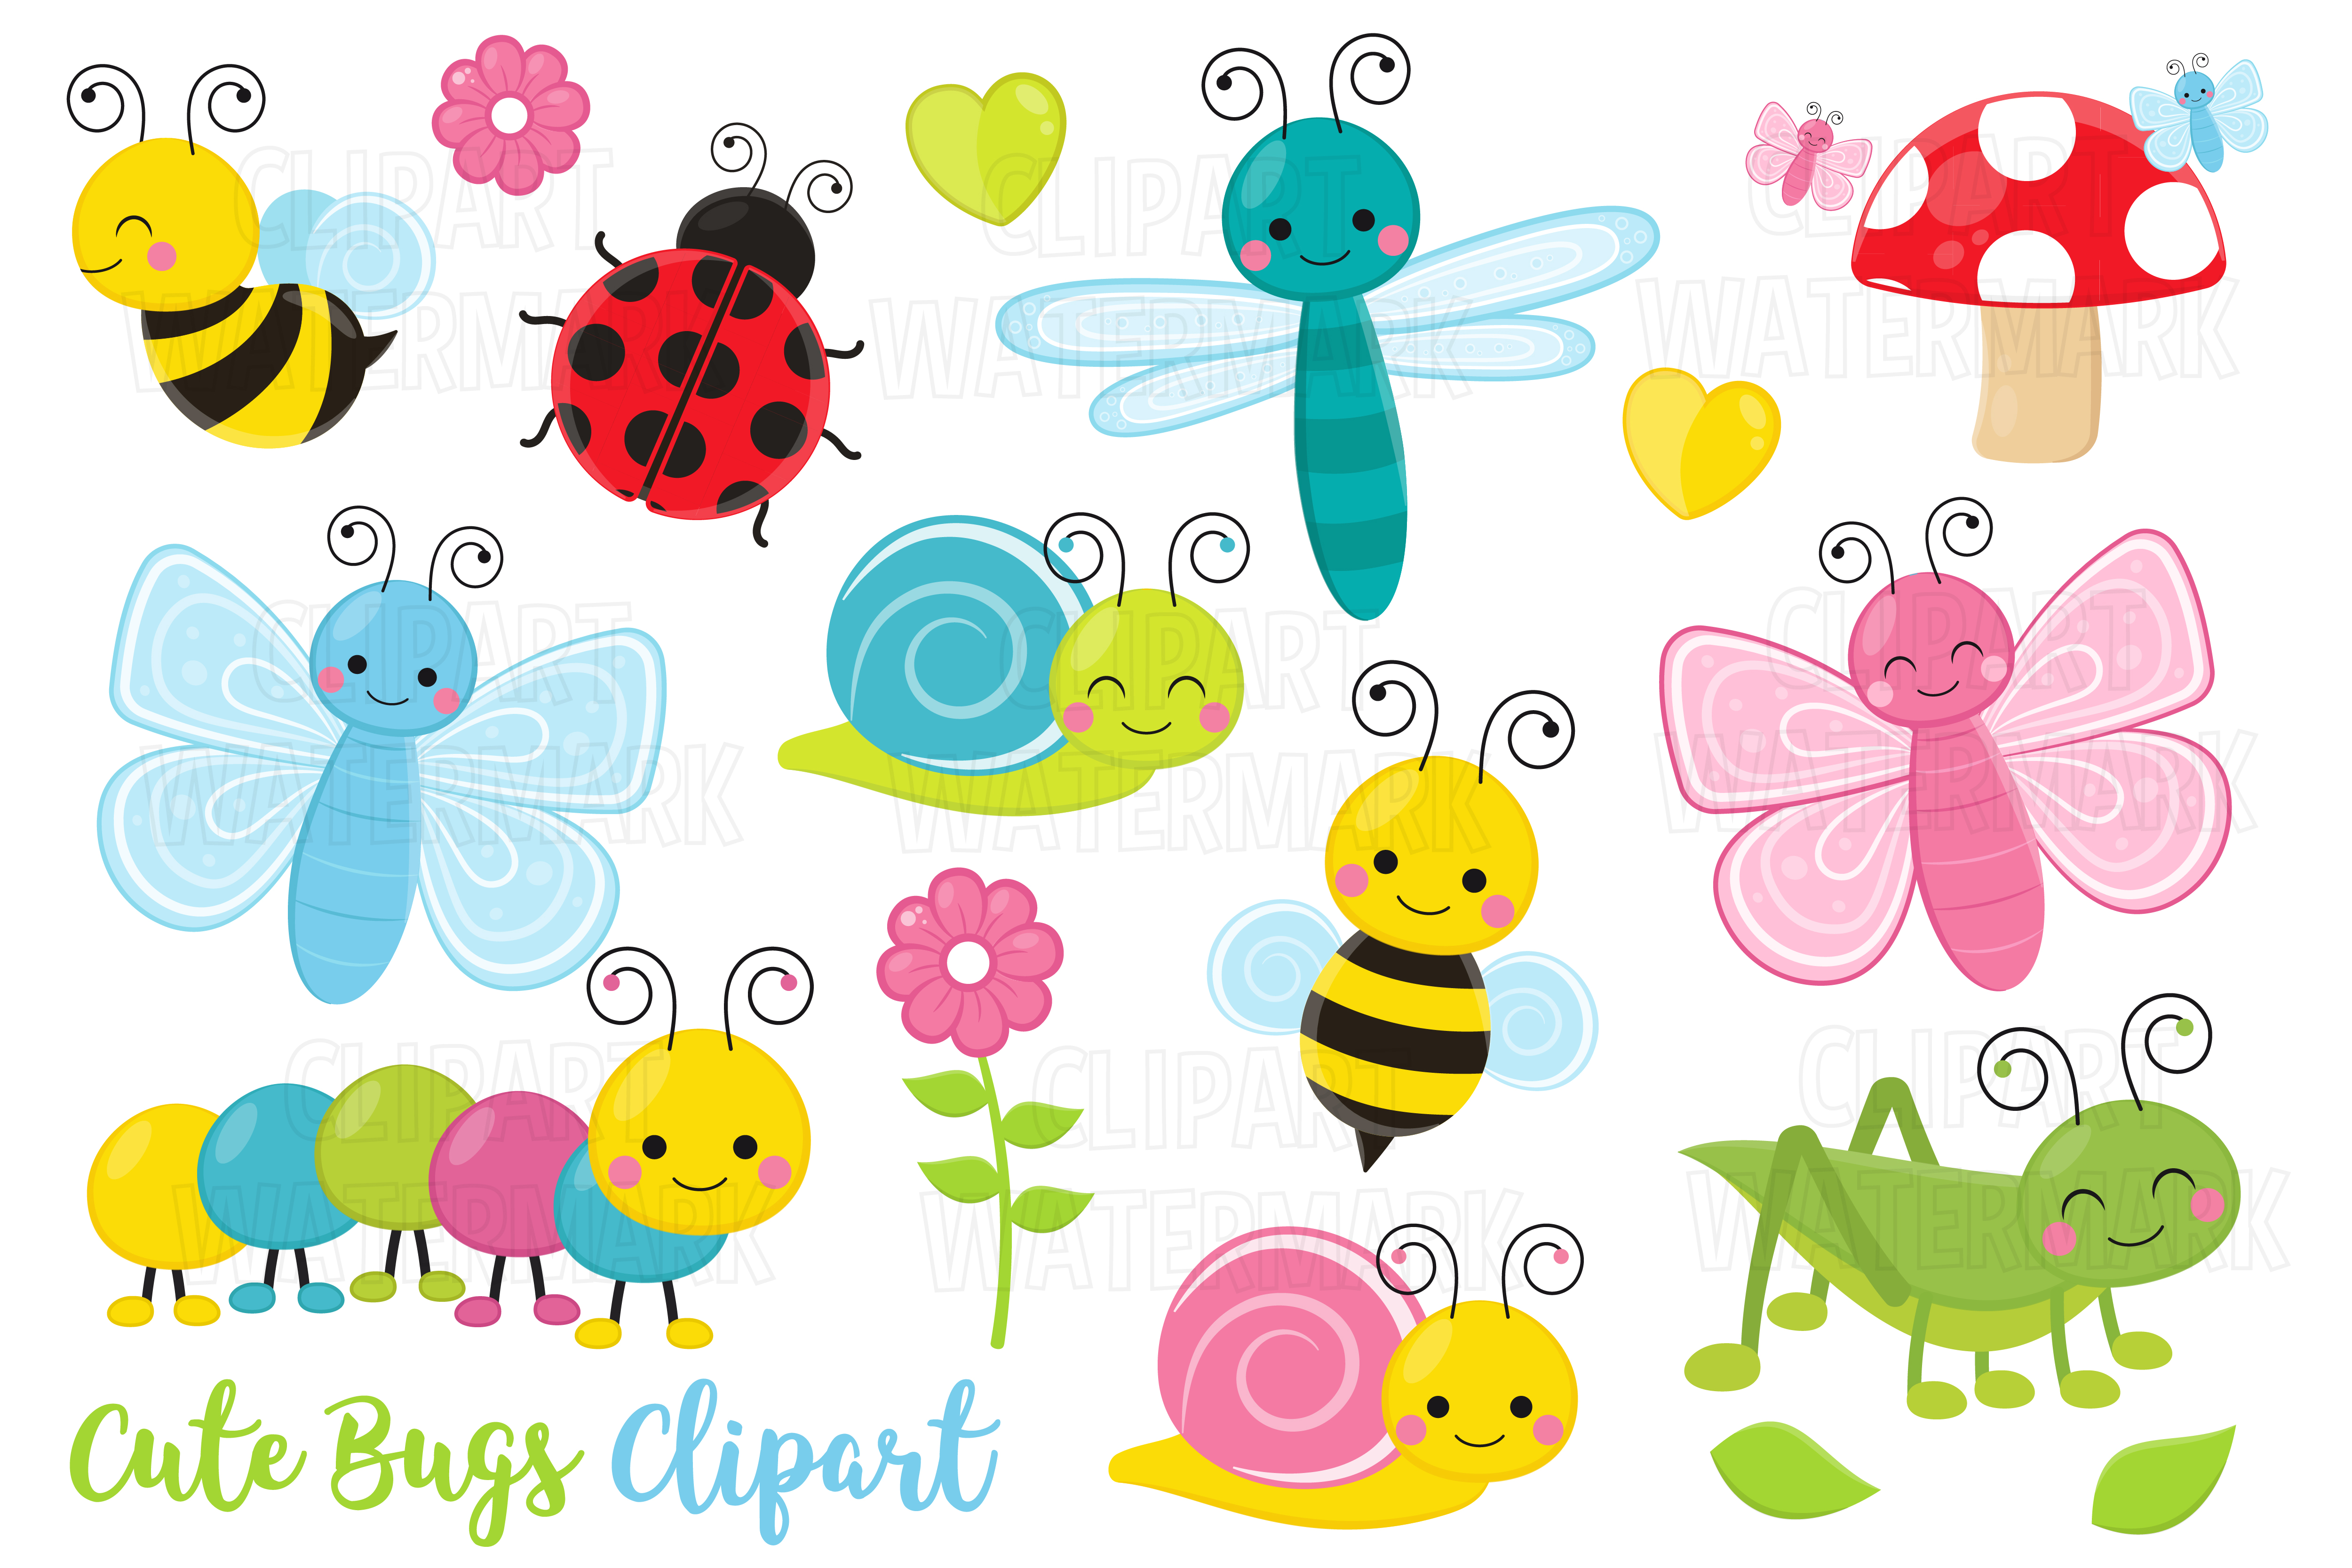 Download Free Cute Crawling Bugs Clipart Graphic By Magreenhouse Creative for Cricut Explore, Silhouette and other cutting machines.